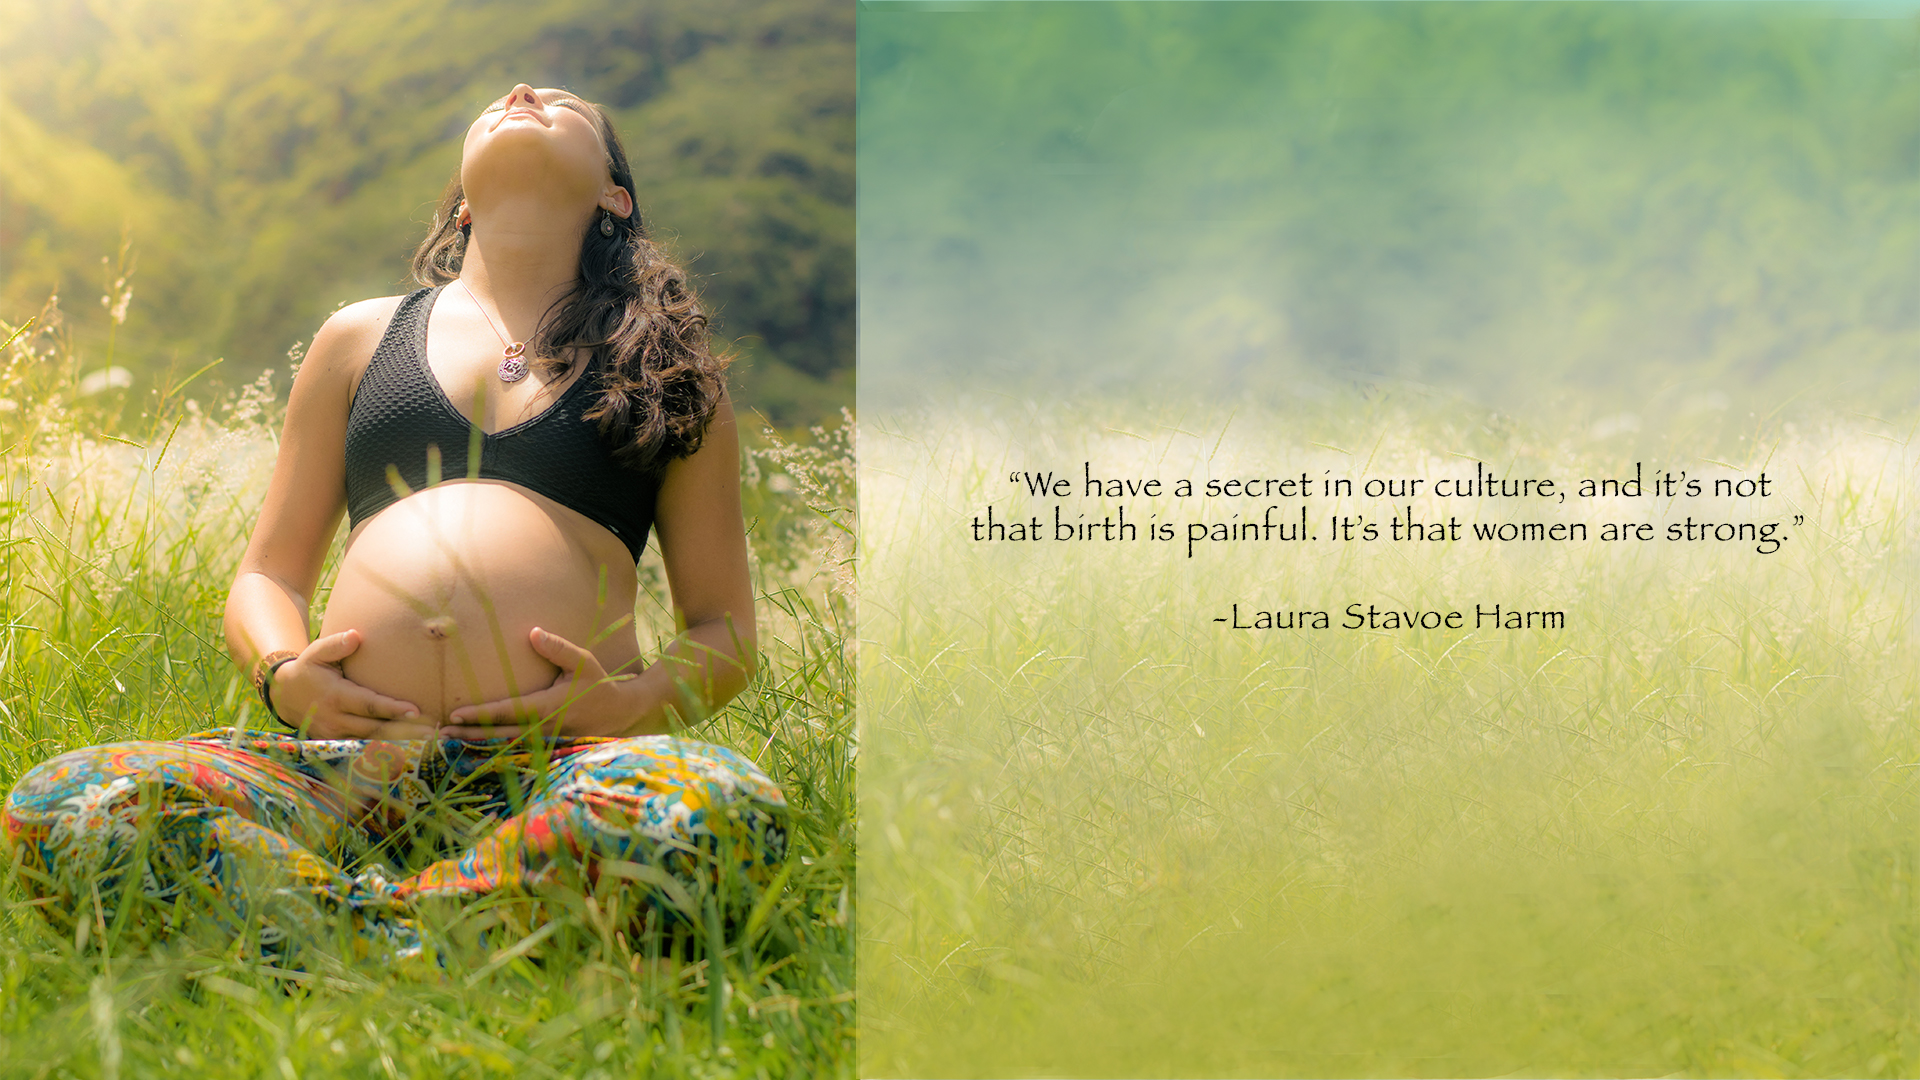 pregnant-woman-quote-3-v2.jpg